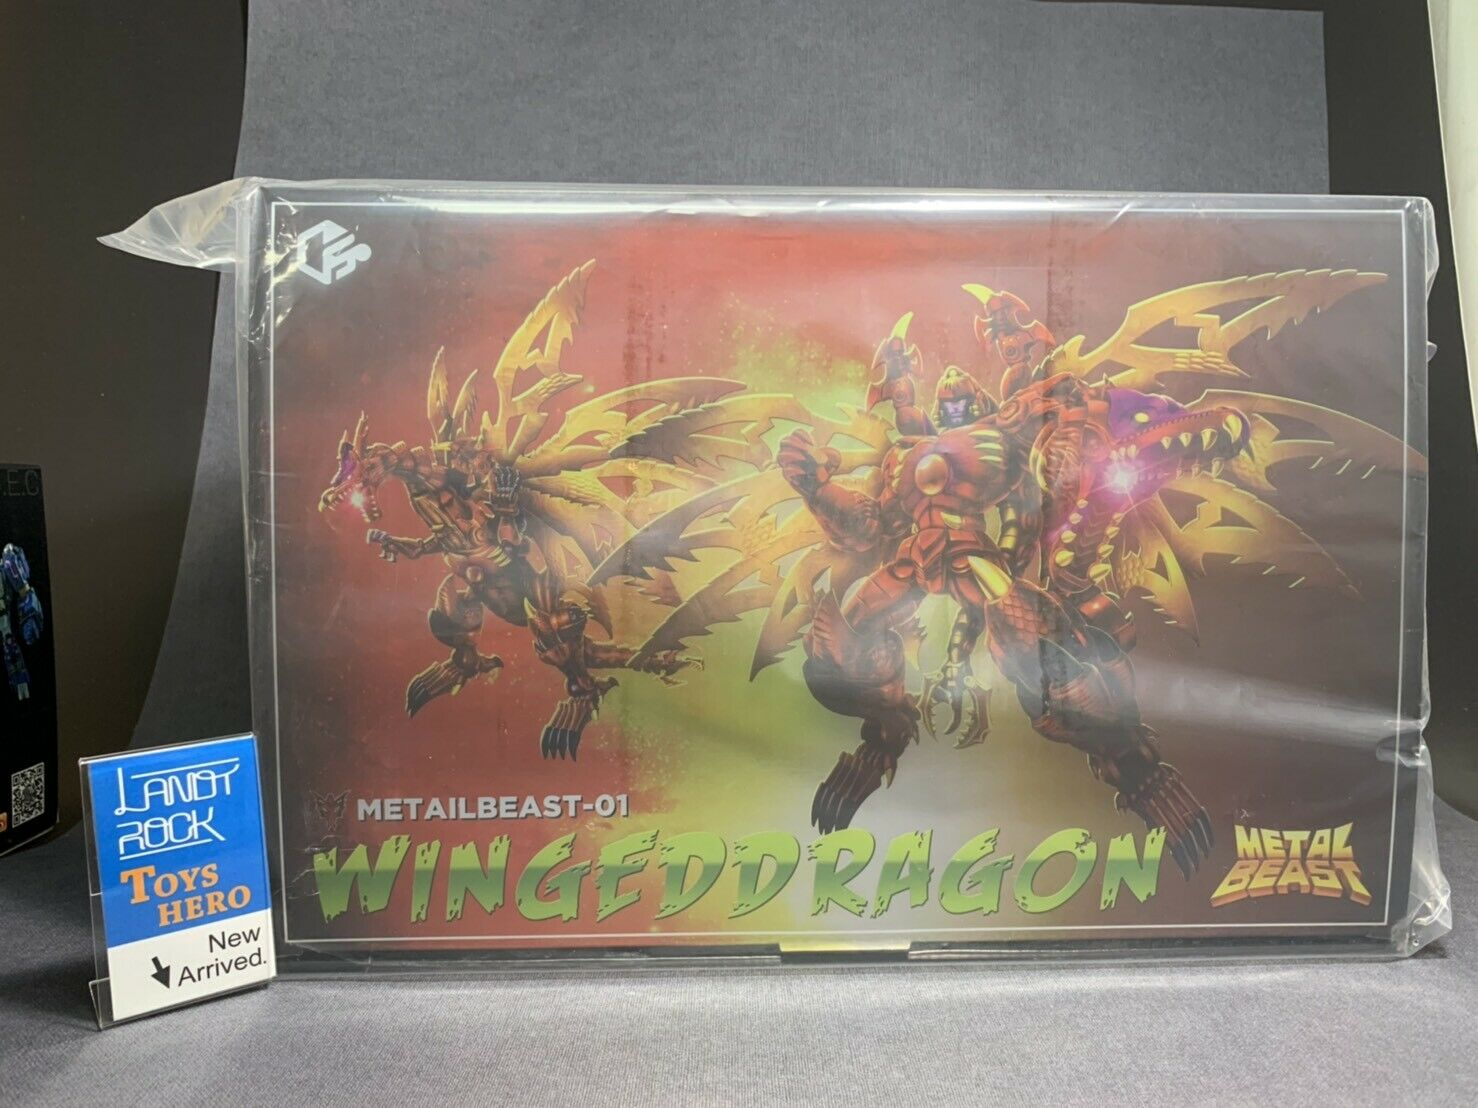 [ToysHero] In Hand Transformers Jiangxing MB-01 Red scale Dragon Wing Red Gragon